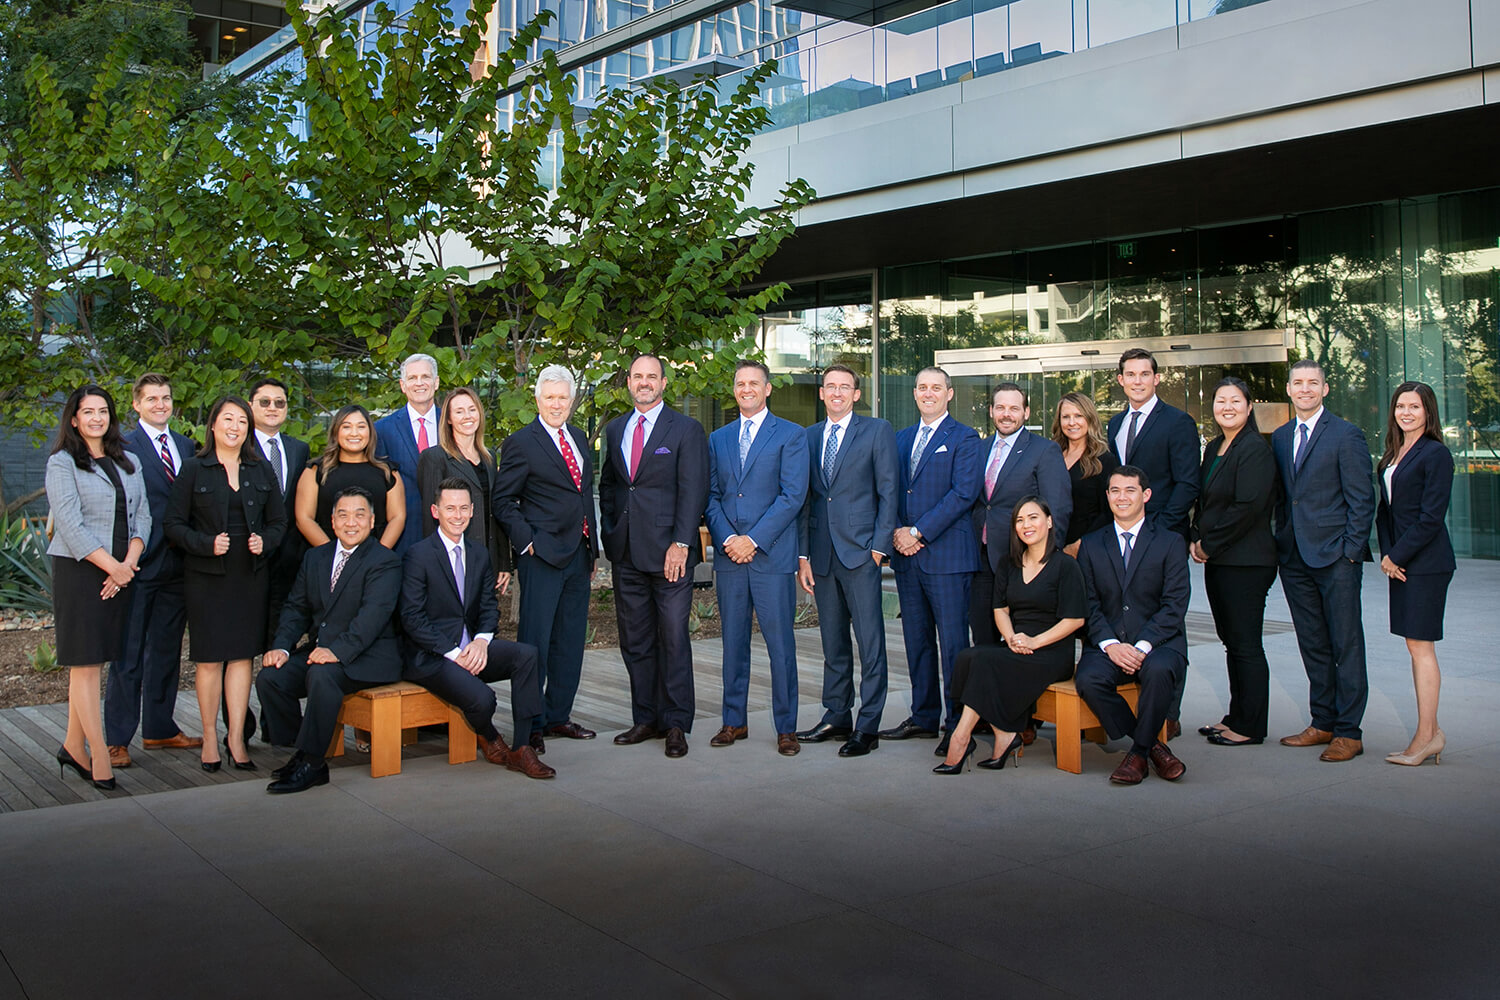 DJM Financial Wealth Management and Insurance Services team photo